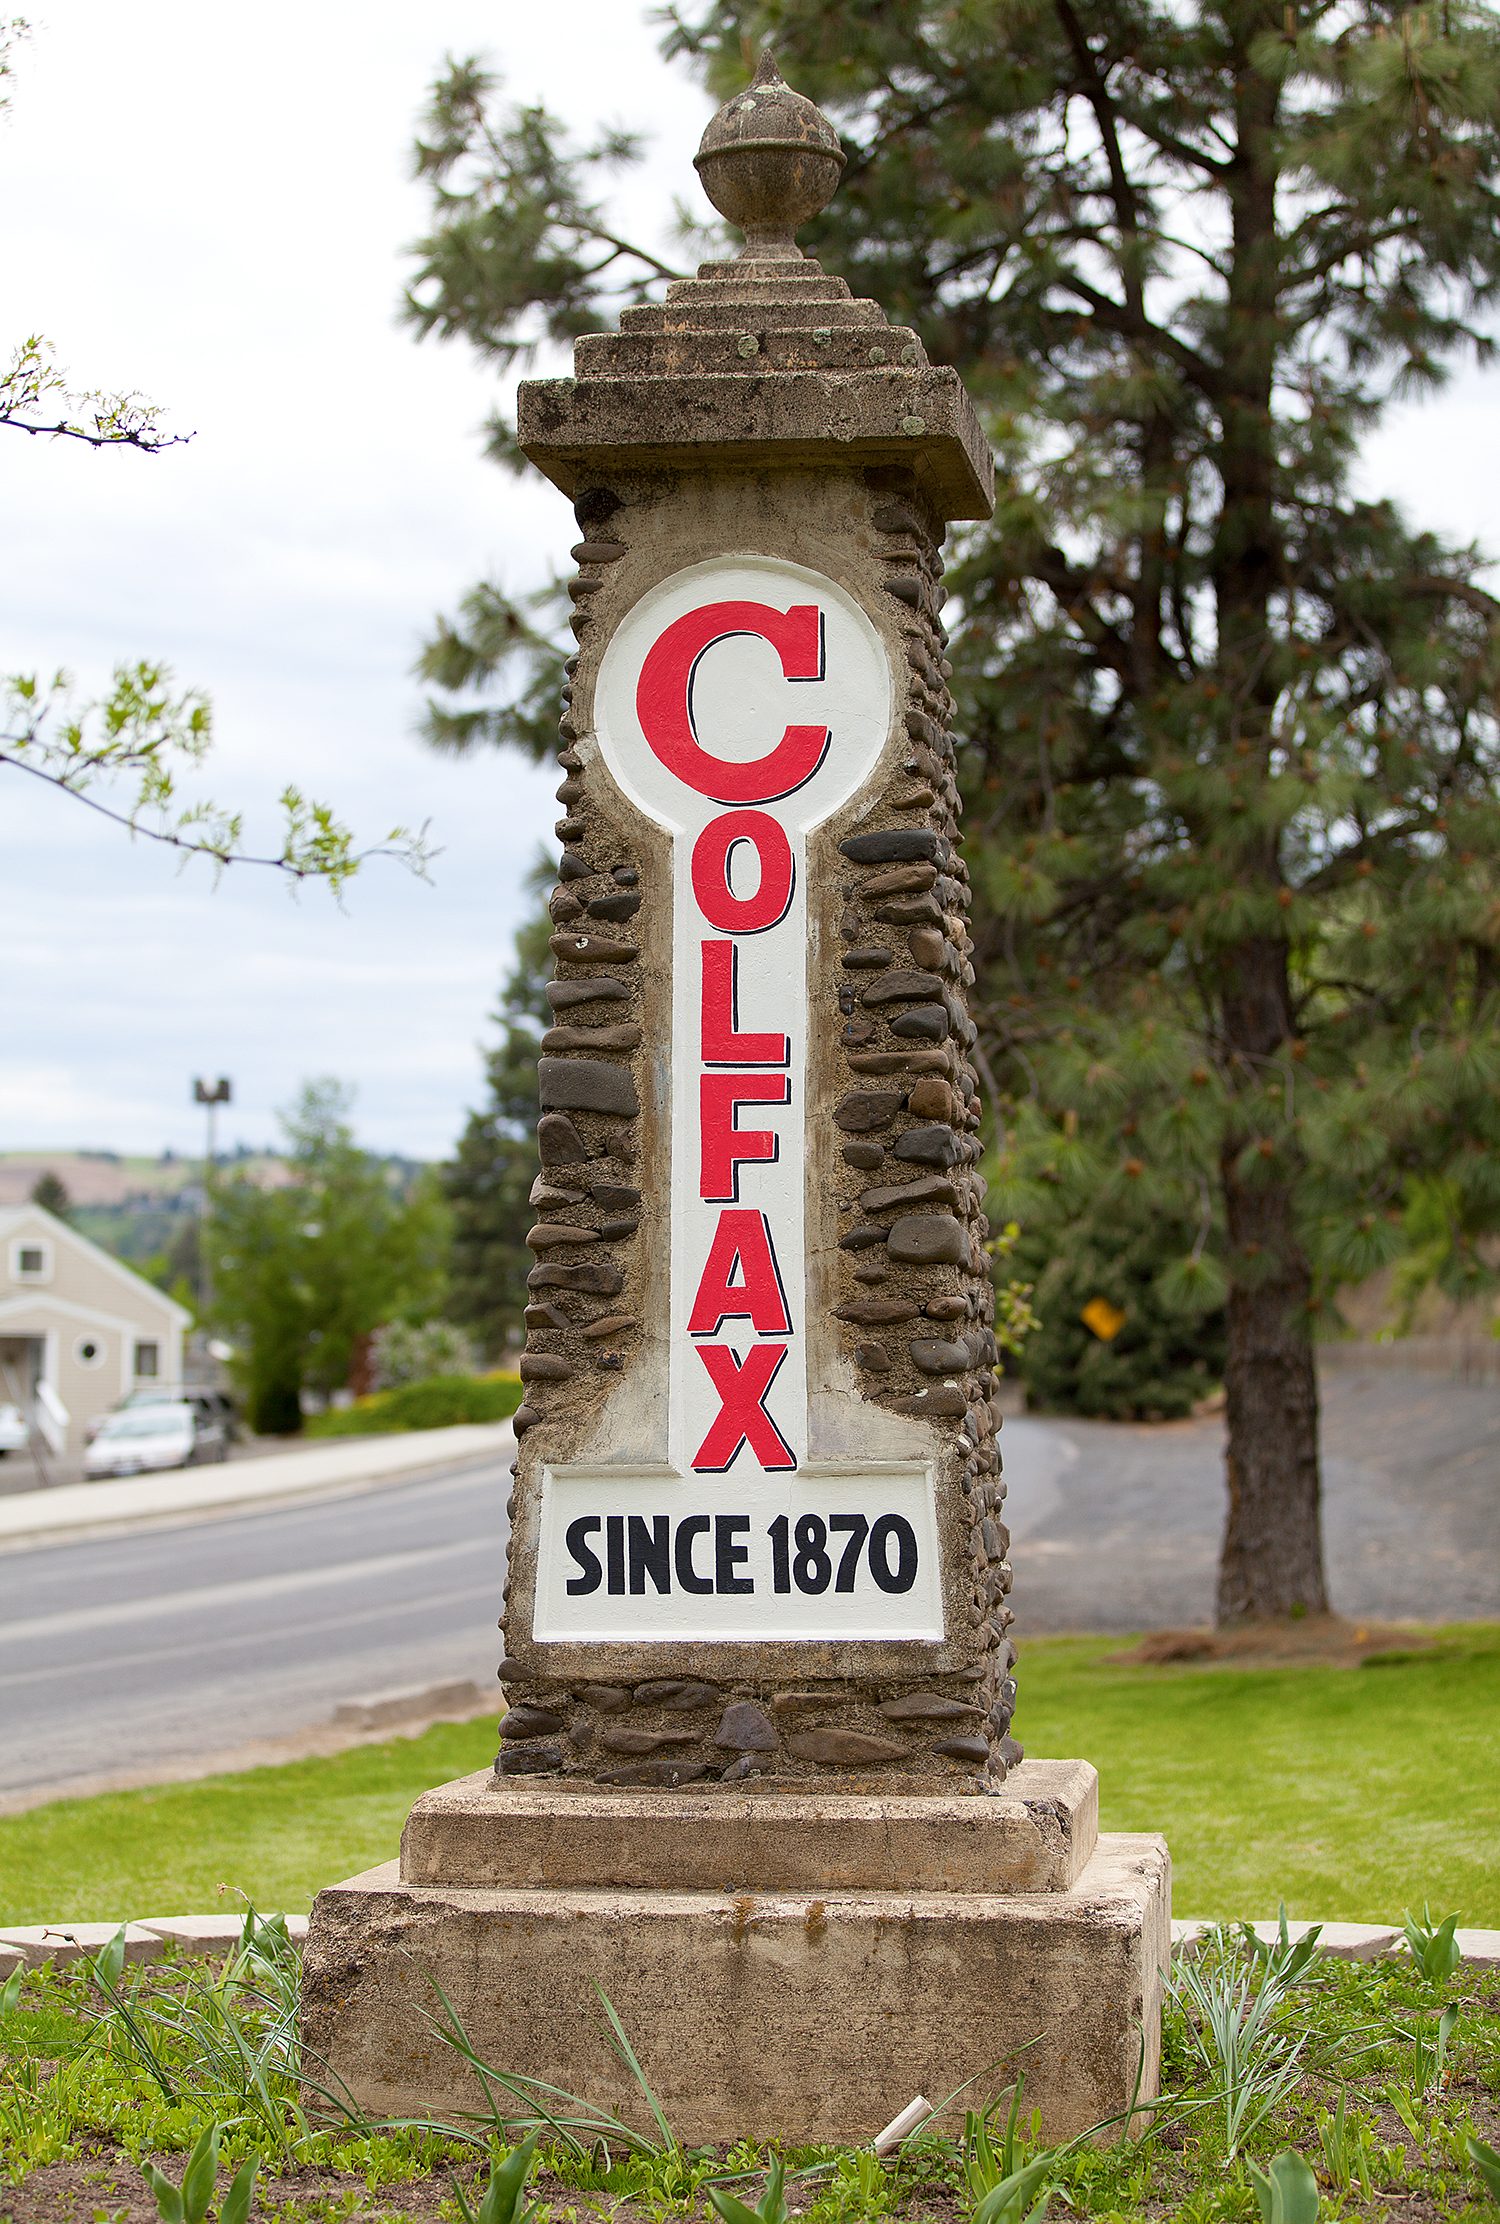 COLFAX. It's easy to focus on the destination rather than the journey, but that's only part of the story. There are so many exciting things to see along the way; the general store in a small town, a historical marker with information about an important event or a sign welcoming visitors into a town. Photographer Anthony May has been collecting Welcome signs from towns and cities he's visited for over nine years and across several states. This gallery focuses specifically on Washington. (Image: Anthony May / Seattle Refined)